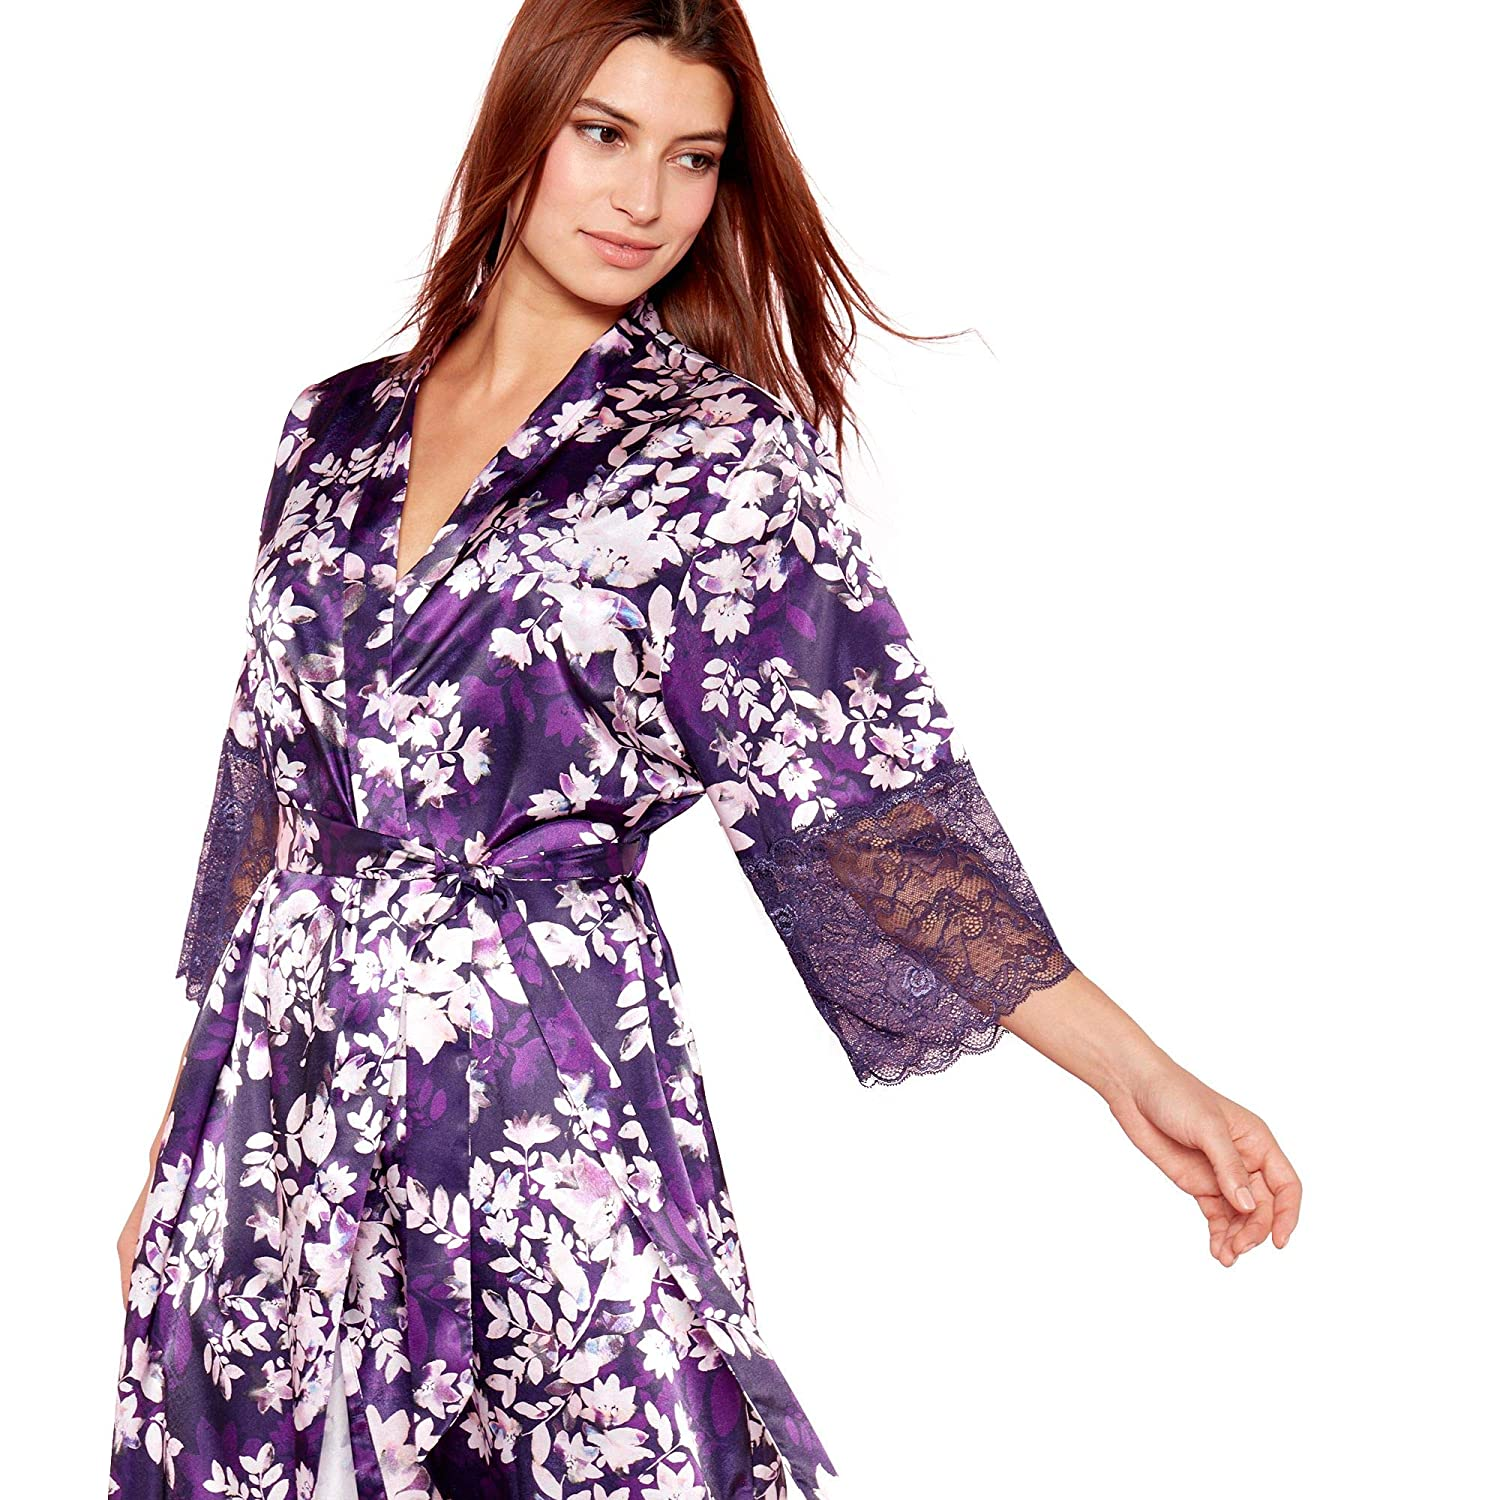 Debenhams The Collection Womens Purple Floral Print  Mystry  Satin Kimono  Dressing Gown  The Collection  Amazon.co.uk  Clothing 8c3d3db2d